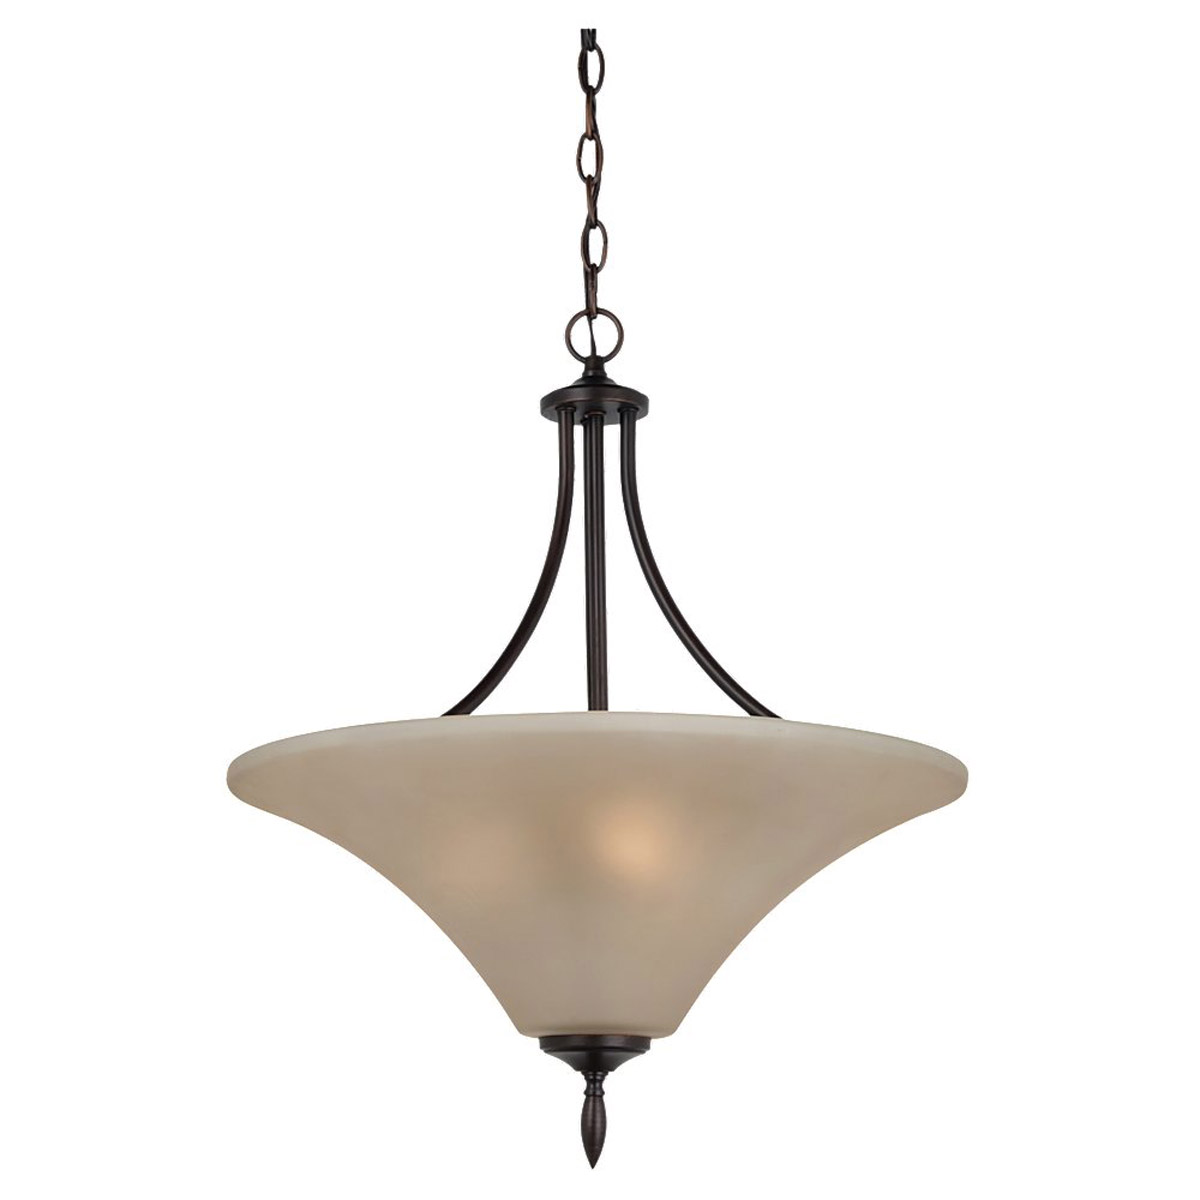 Sea Gull Lighting Montreal 3 Light Pendant Up Light in Burnt Sienna 65181BLE-710